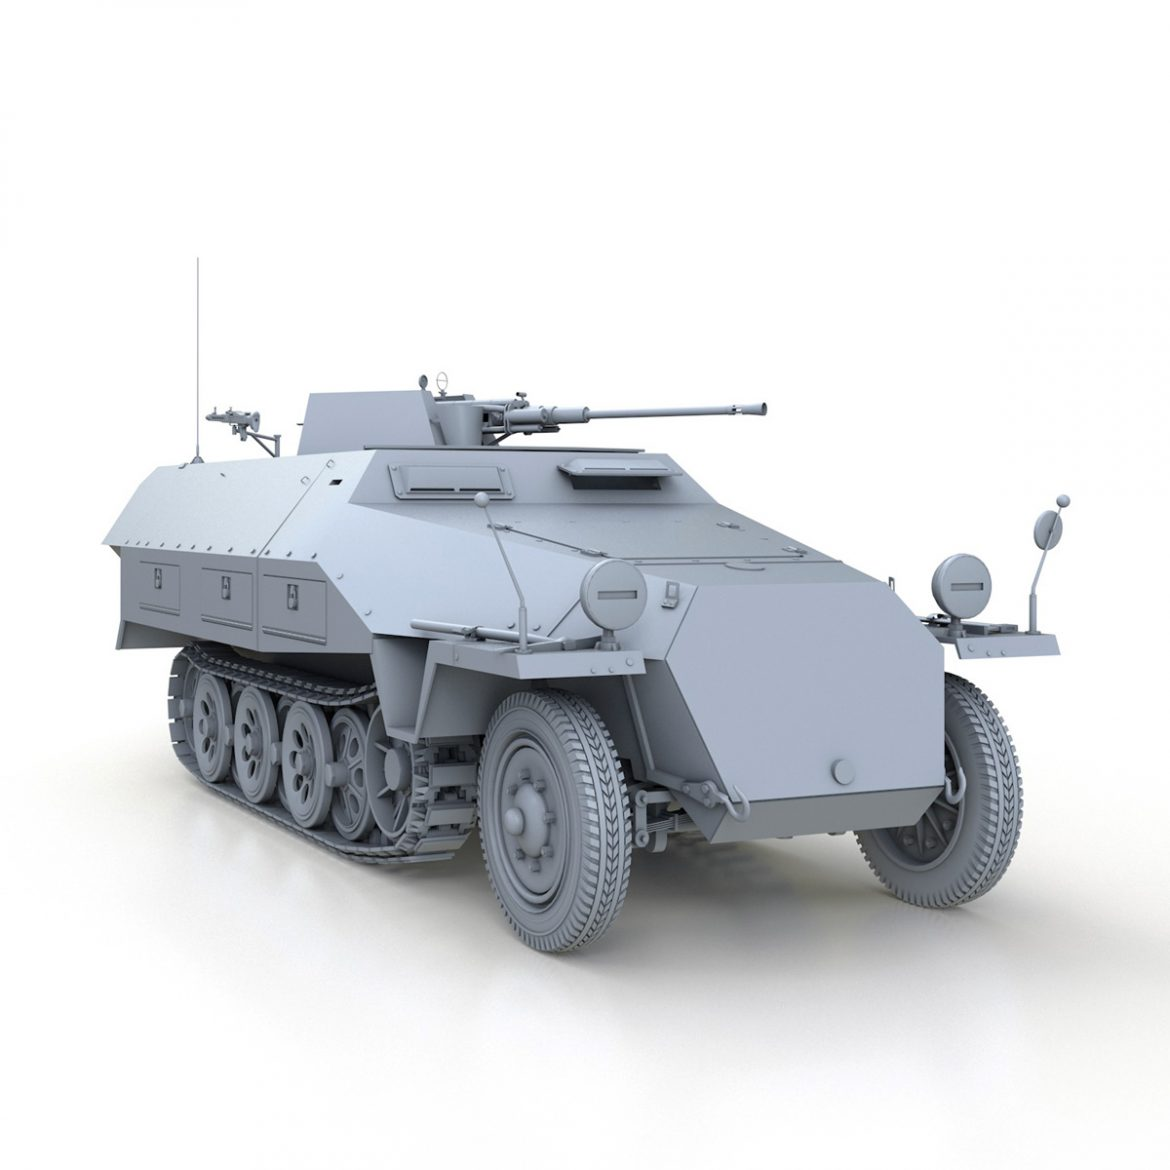 sd.kfz 251/17 ausf.d – anti-aircraft vehicle 3d model 3ds fbx c4d lwo obj 302956